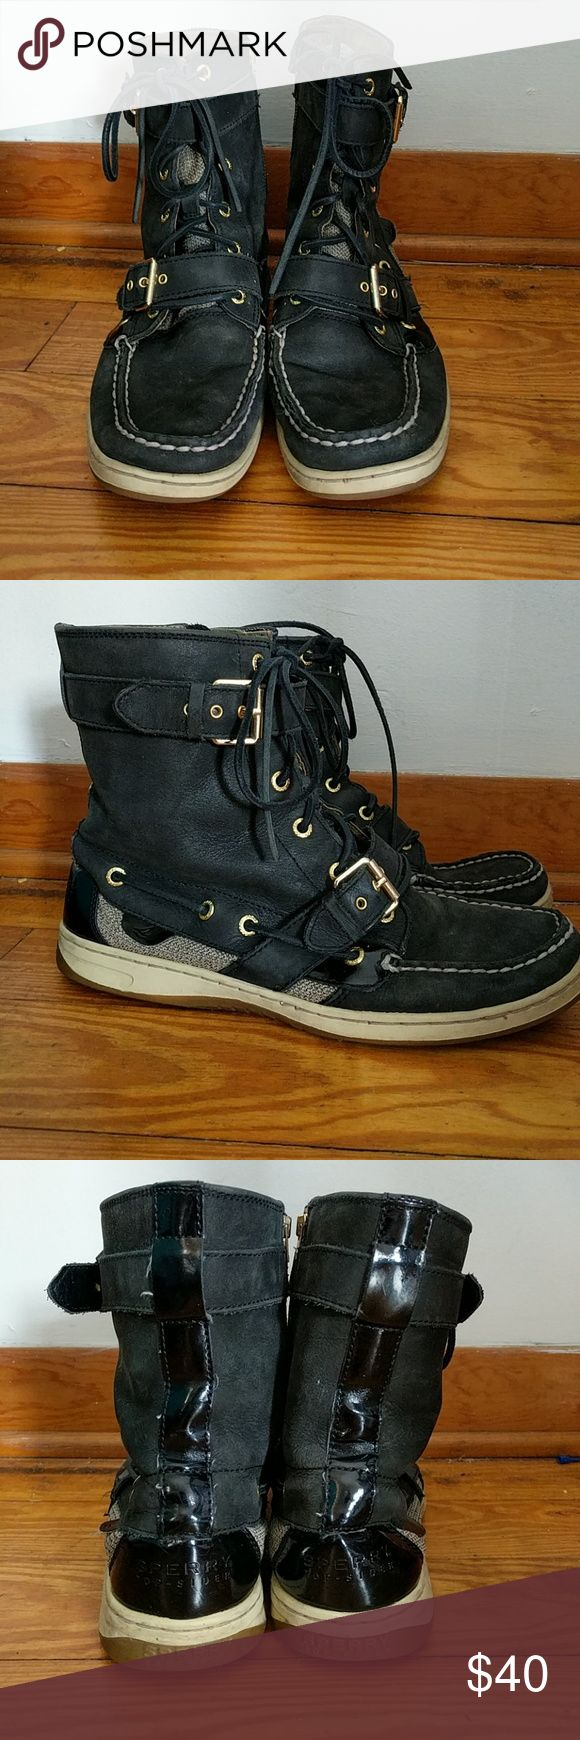 SALE! Black Sperry Combat Boots Comfy combat boots! They are perfect with a pair of jeans! Bundle up! Offers always welcome! Sperry Shoes Combat & Moto Boots